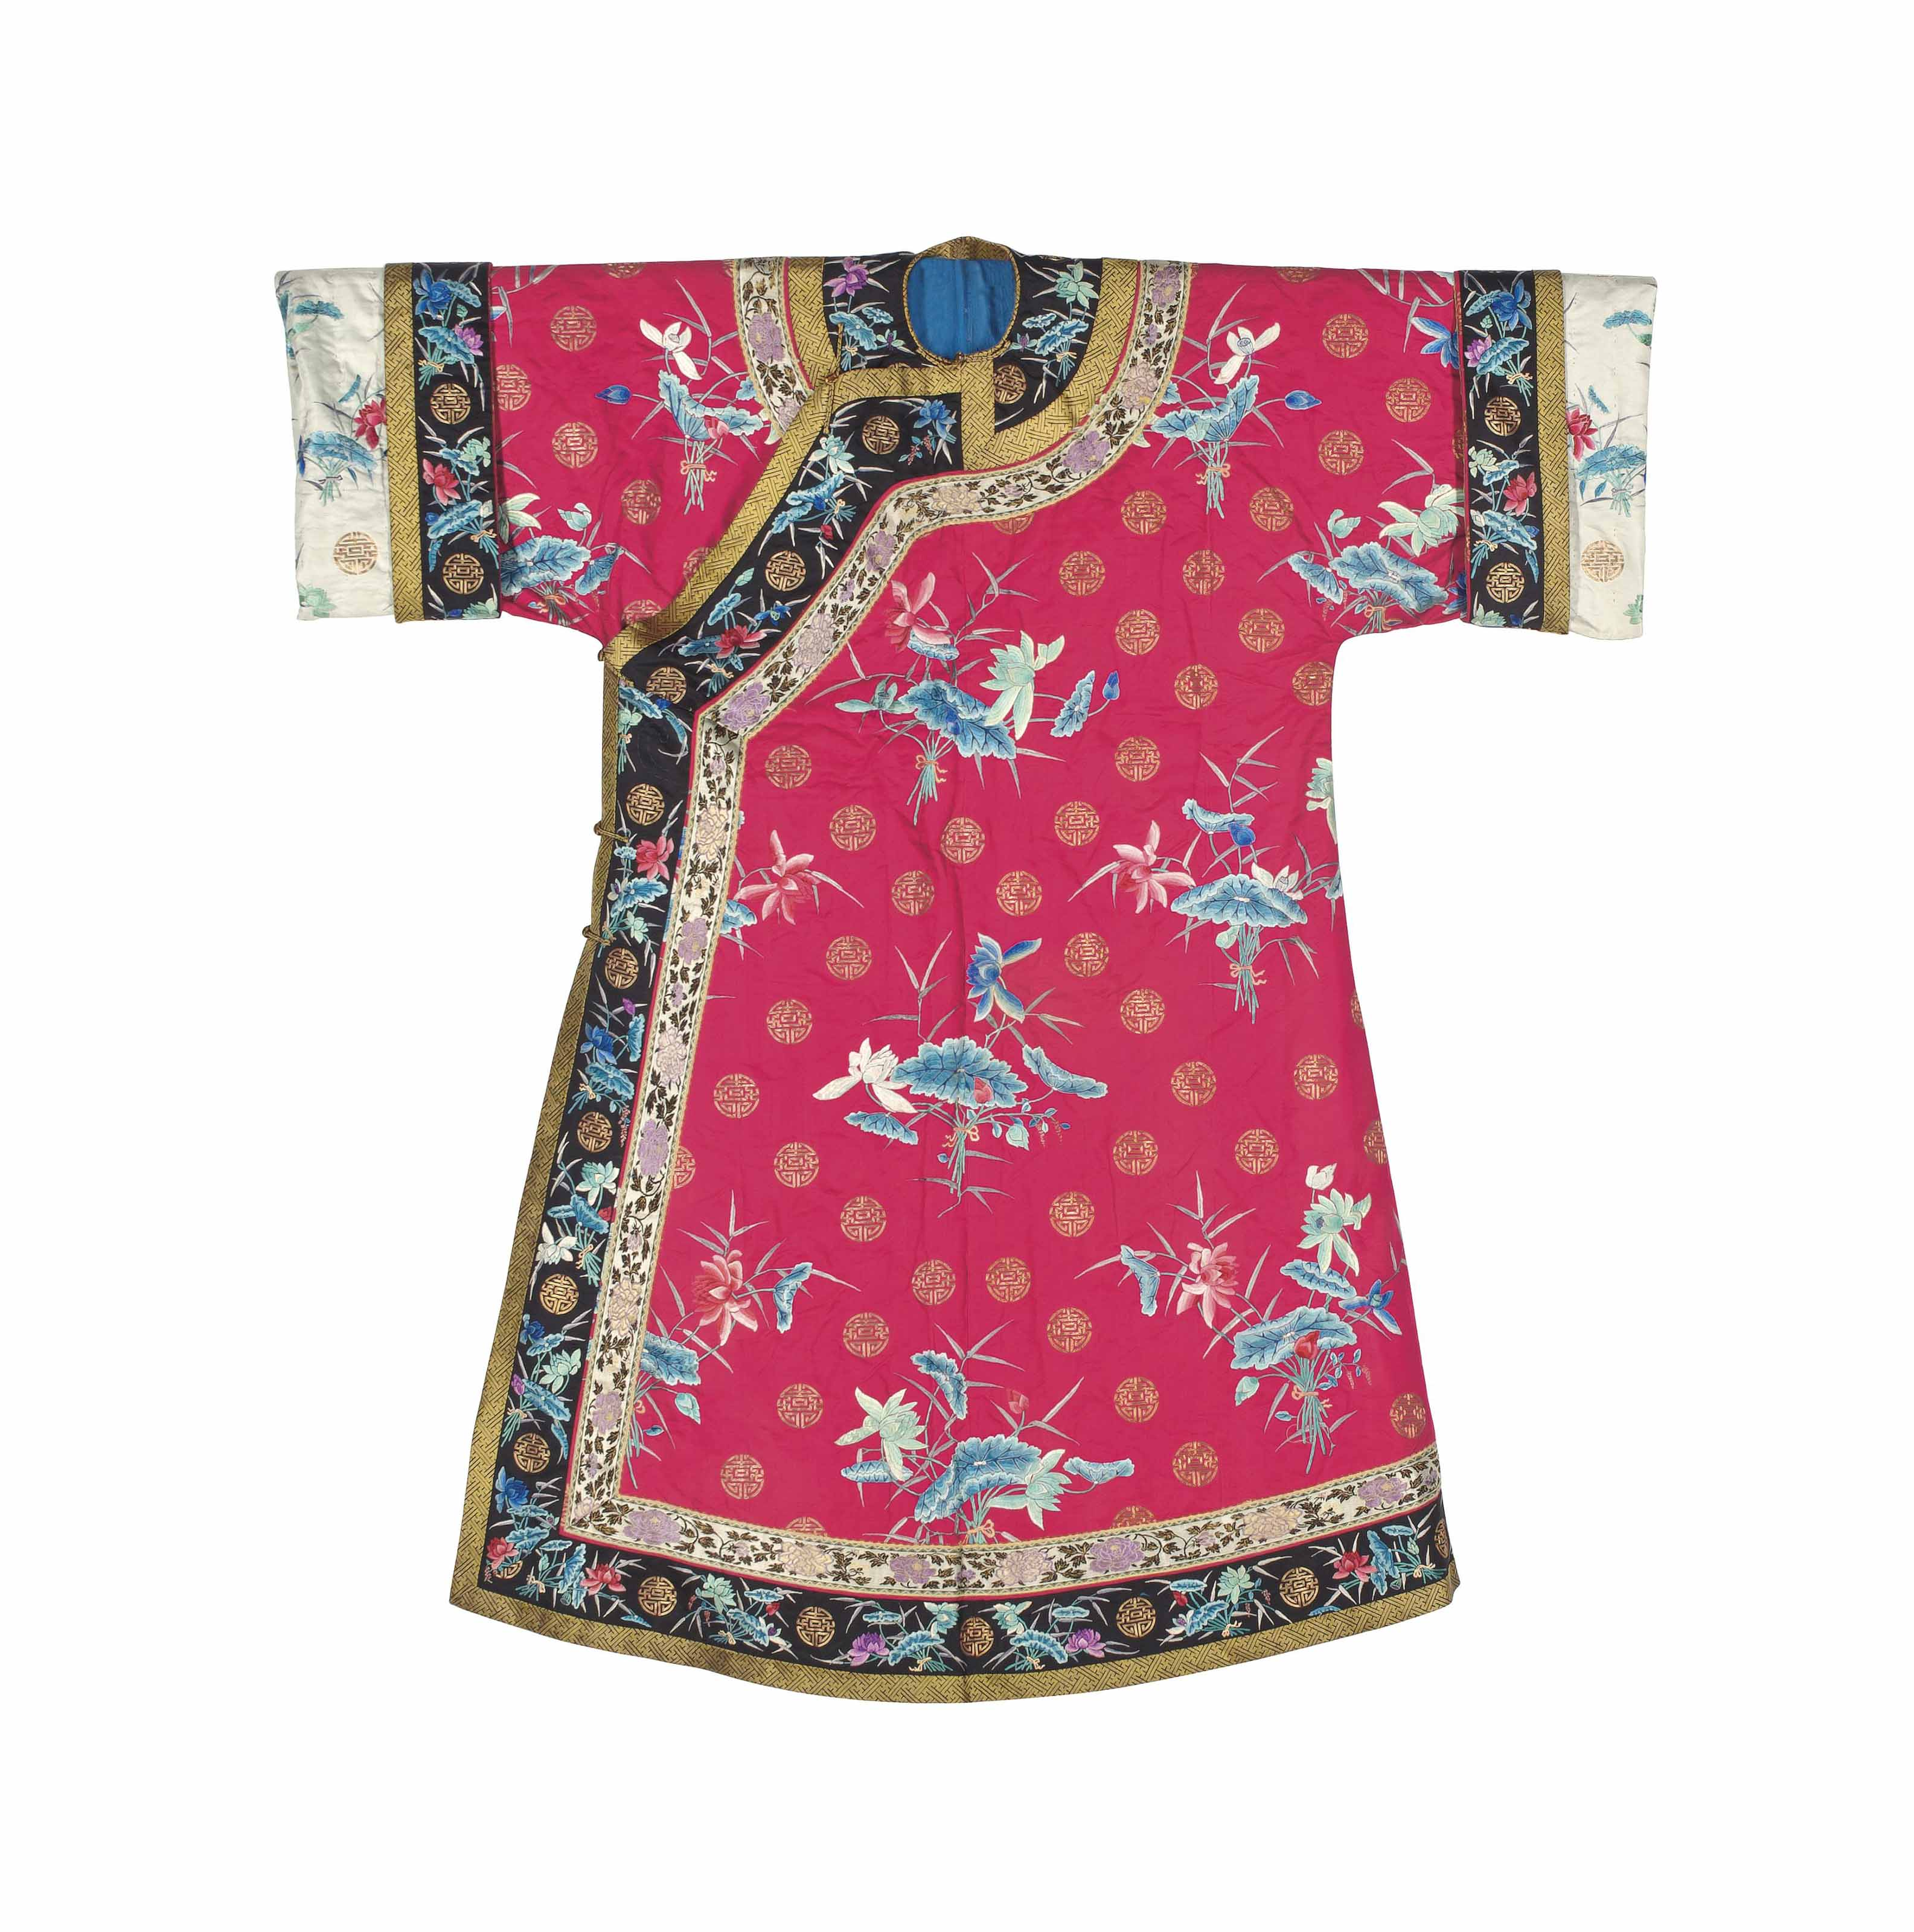 AN EMBROIDERED CERISE-GROUND WINTER ROBE FOR A LADY